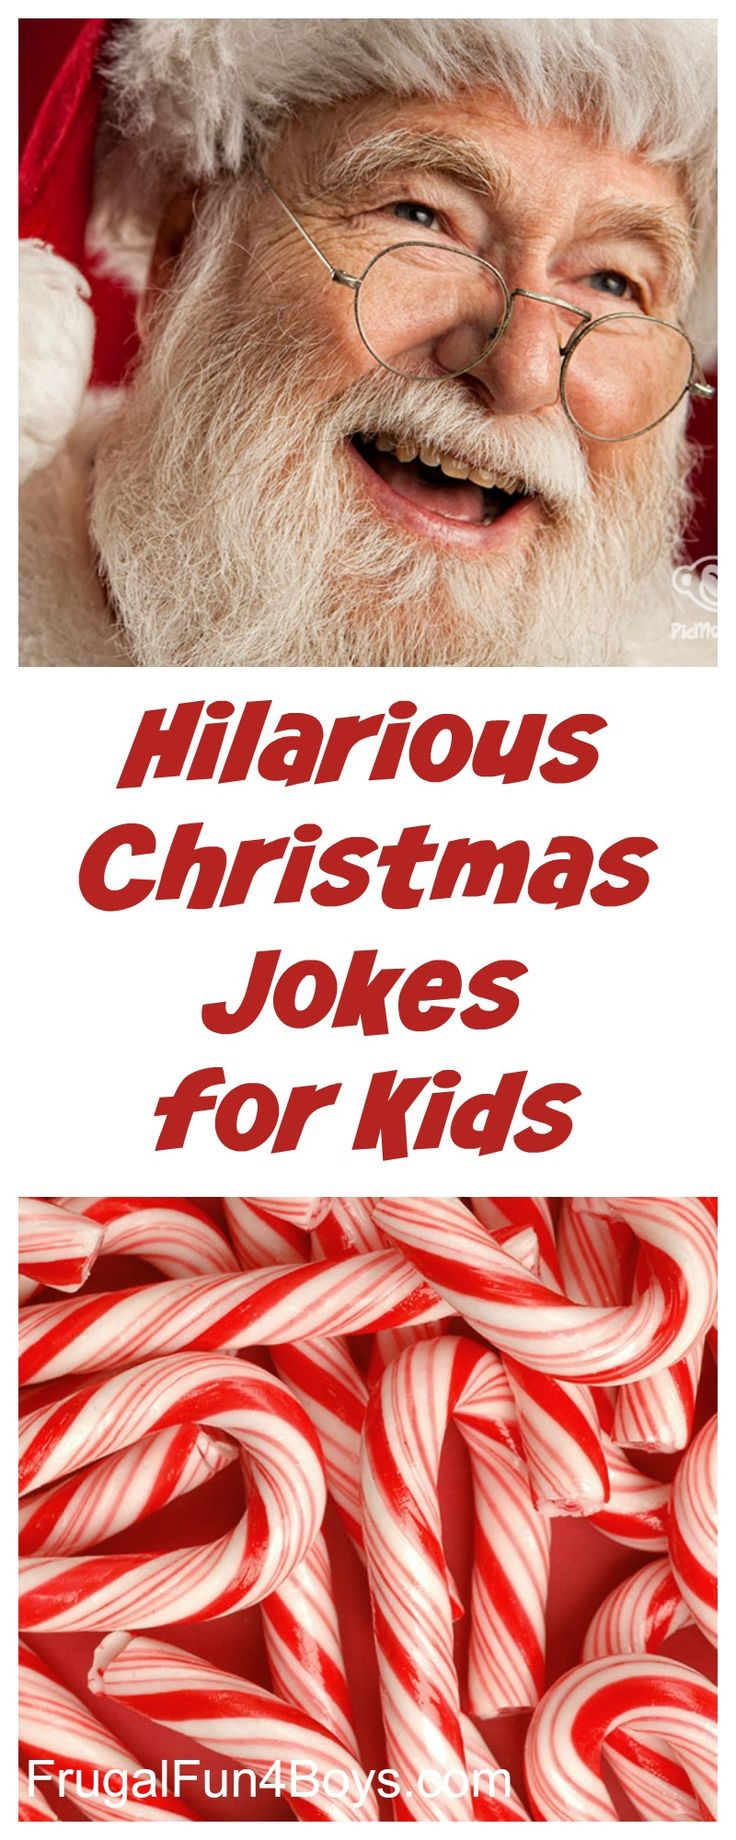 We love a good joke!  Here are some hilarious Christmas jokes that will make your kids laugh like Santa and his belly like a bowl full of jelly!  Okay, maybe some of them are a little cheesy, but I will say – we did a LOT of searching to find these jokes and narrowed it …